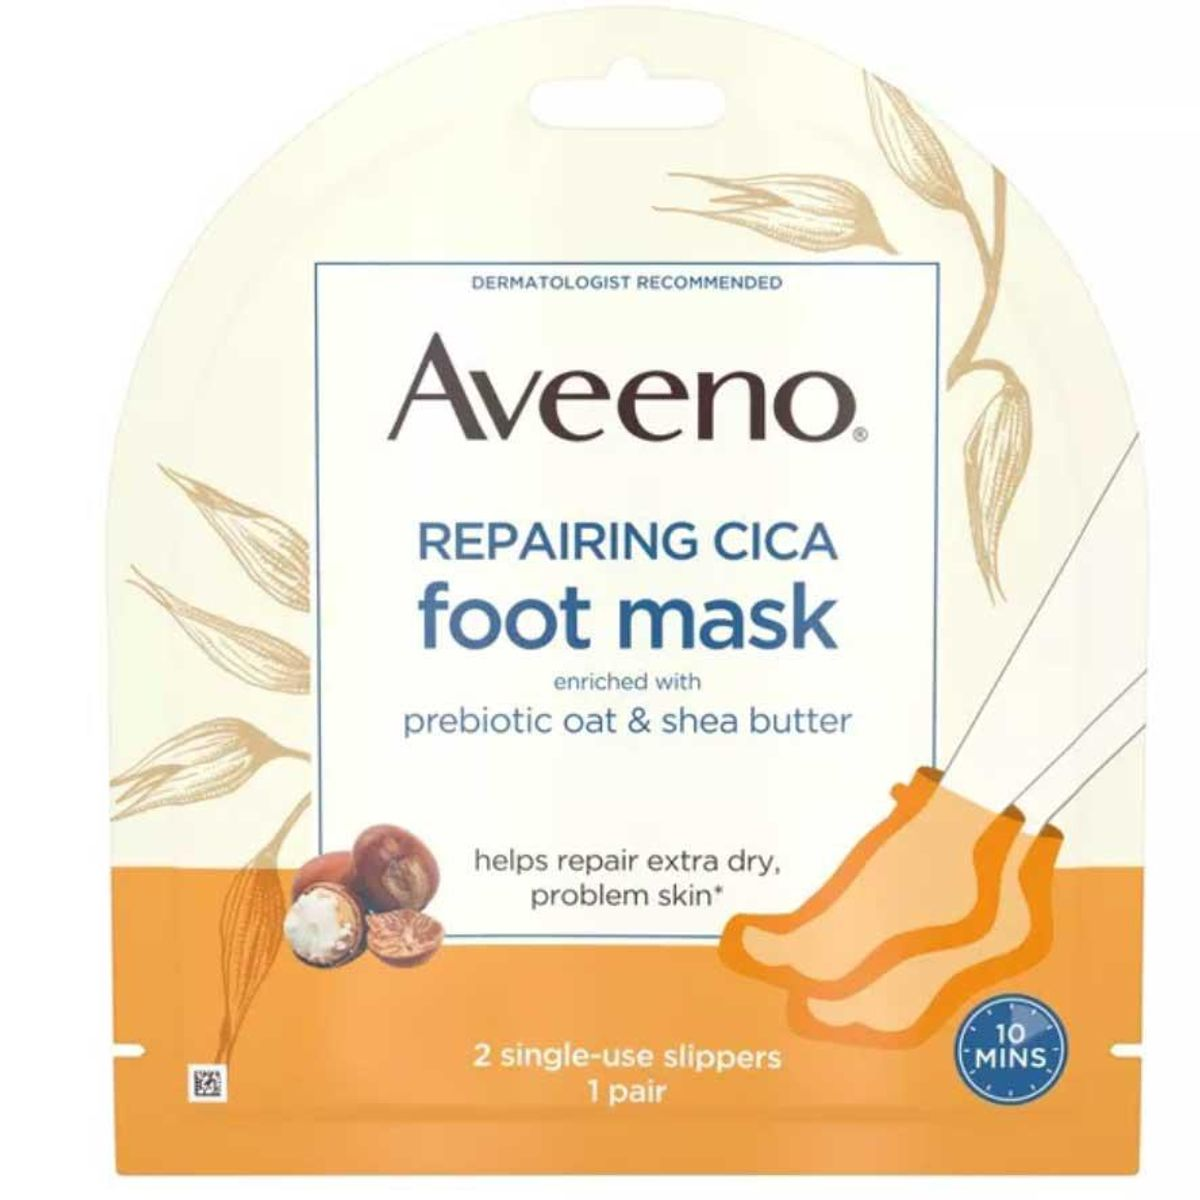 aveeno repairing cica foot mask with oat and shea butter